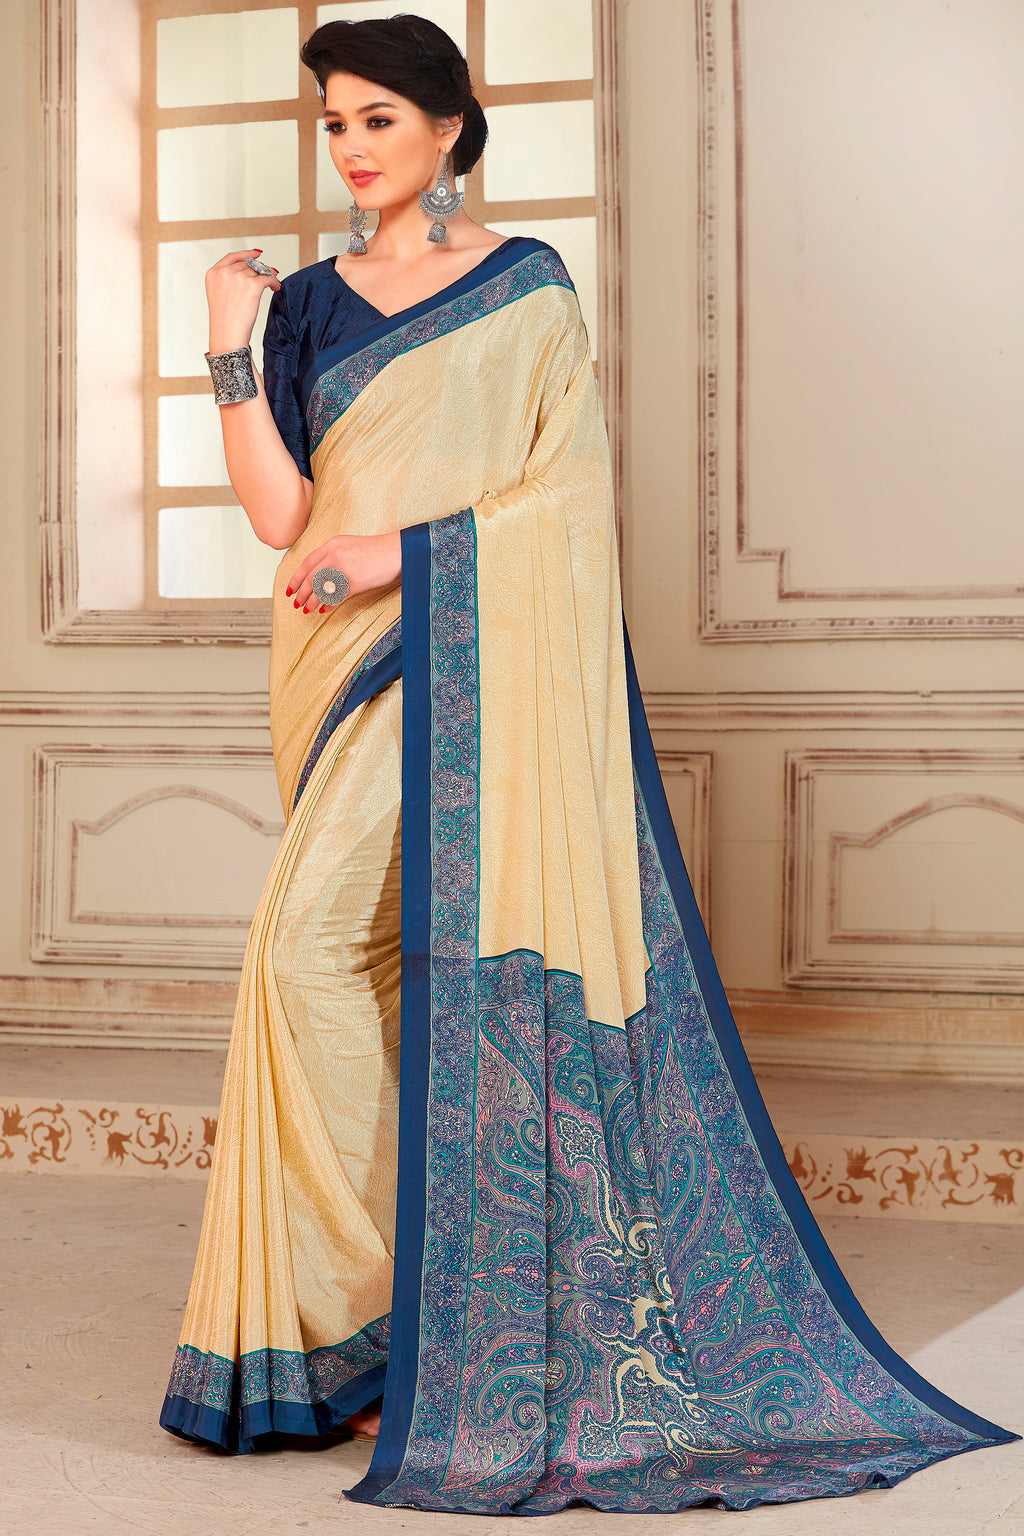 Cream & Blue Color Crepe  Kitty Party Sarees NYF-8050